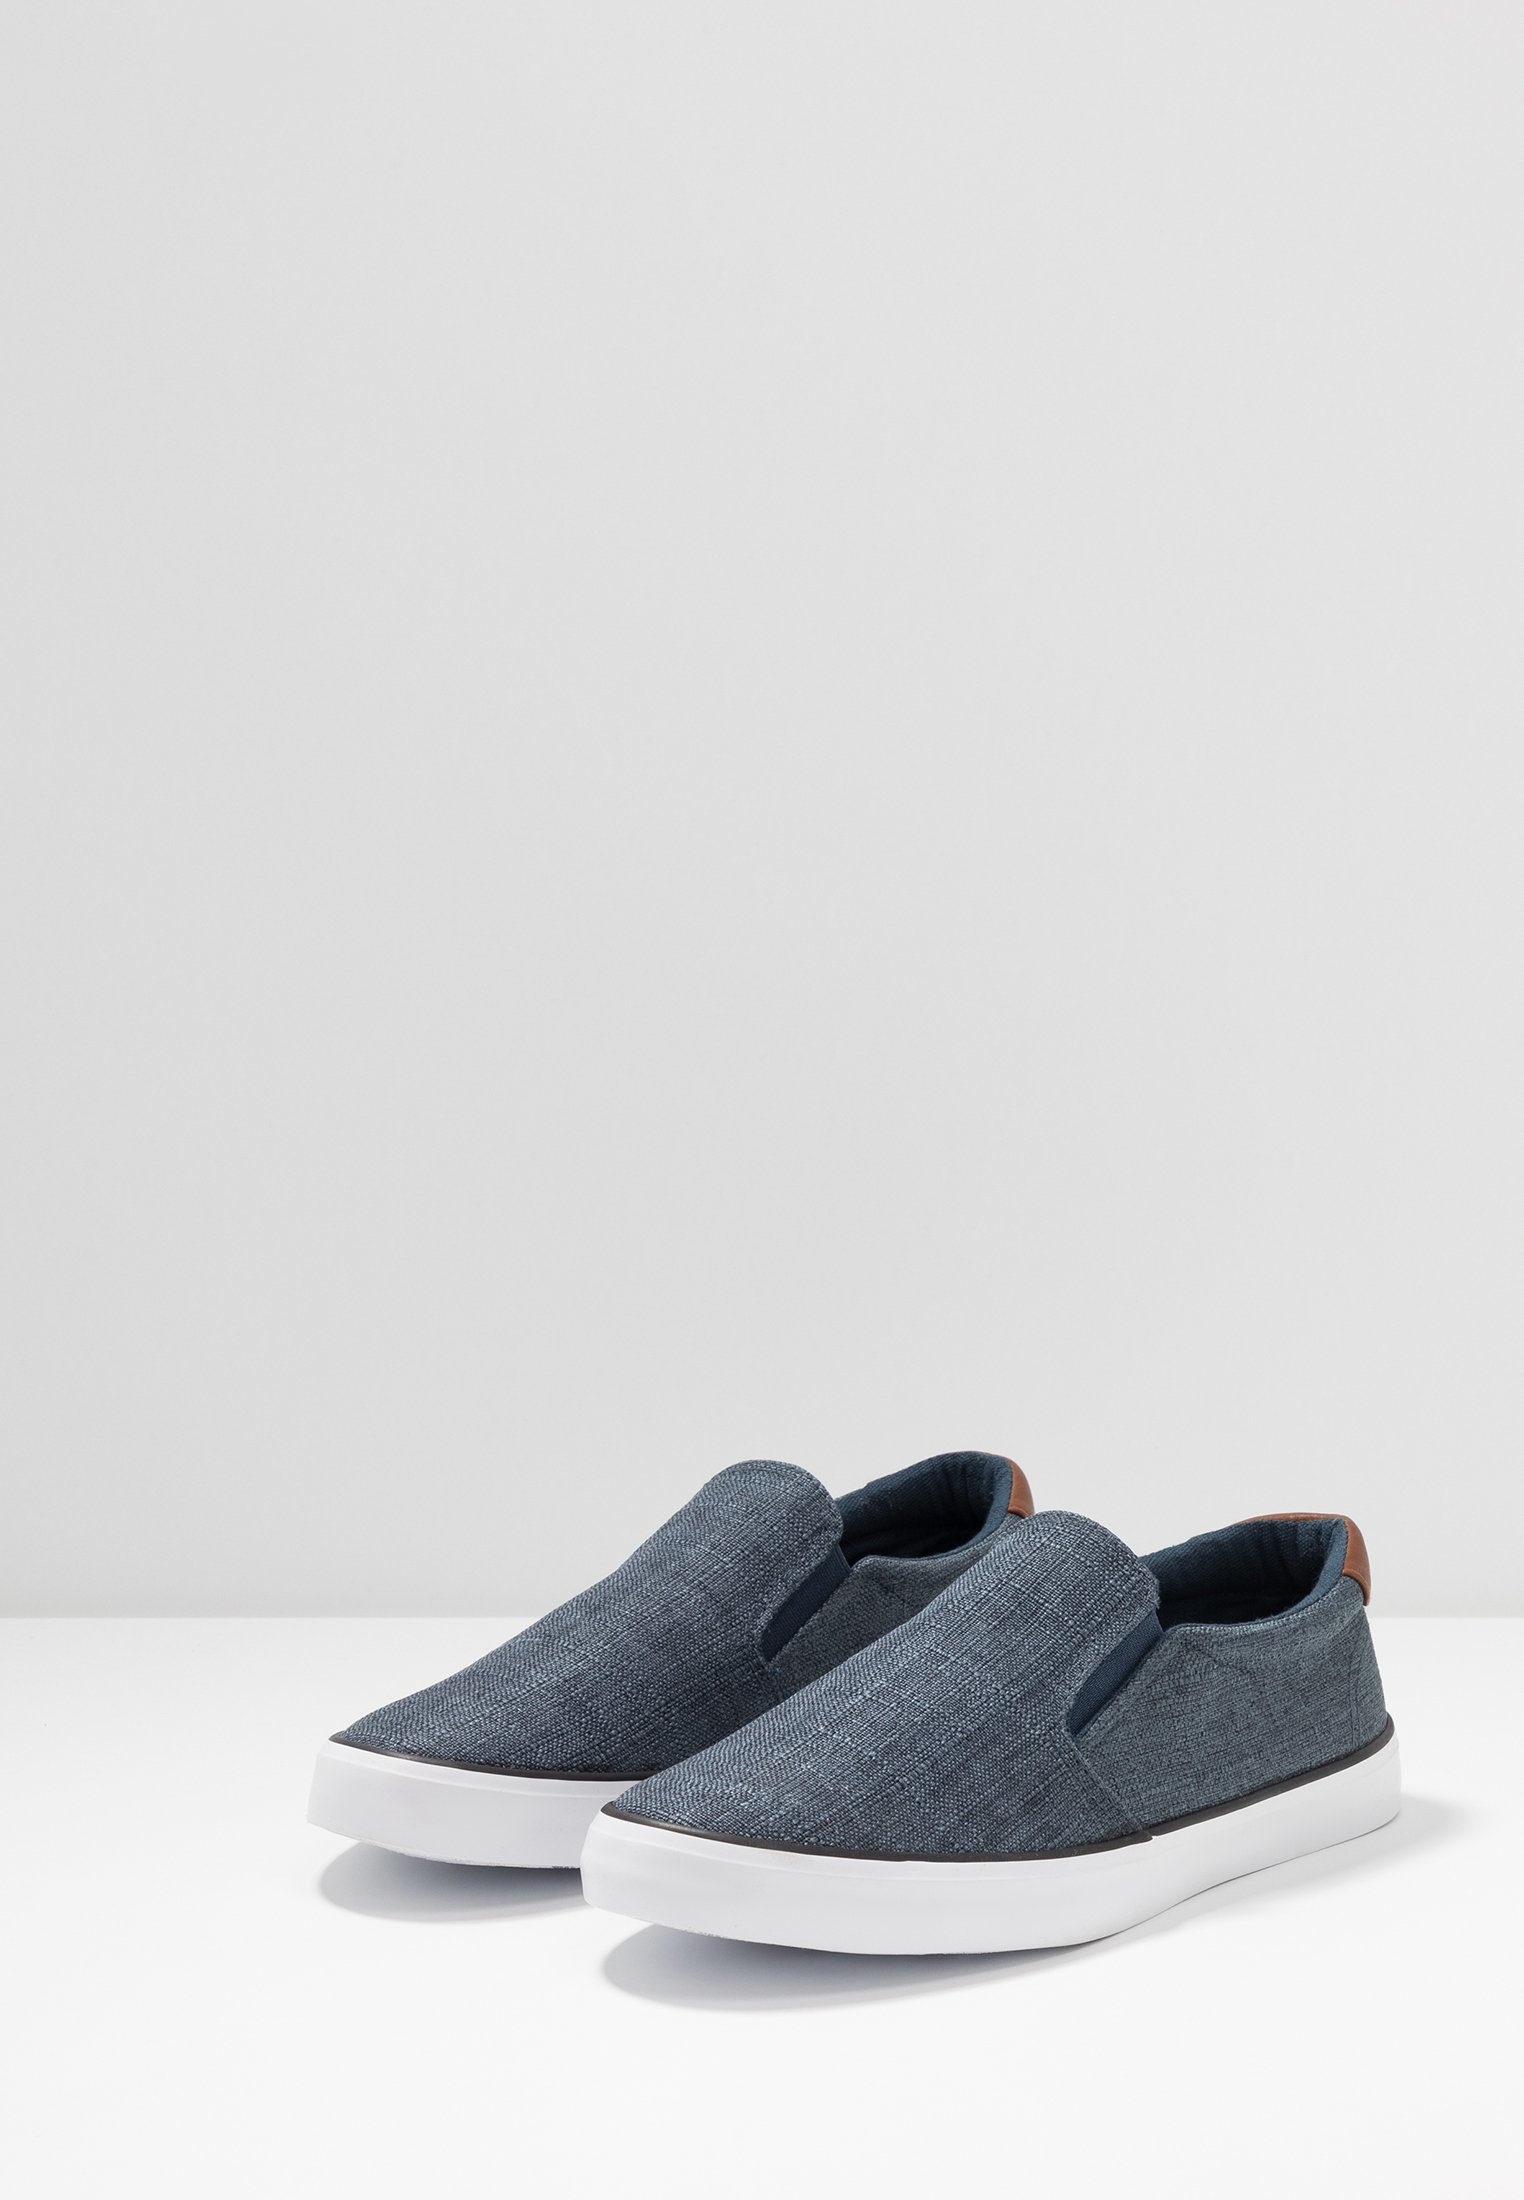 Pier One Loafers - blue